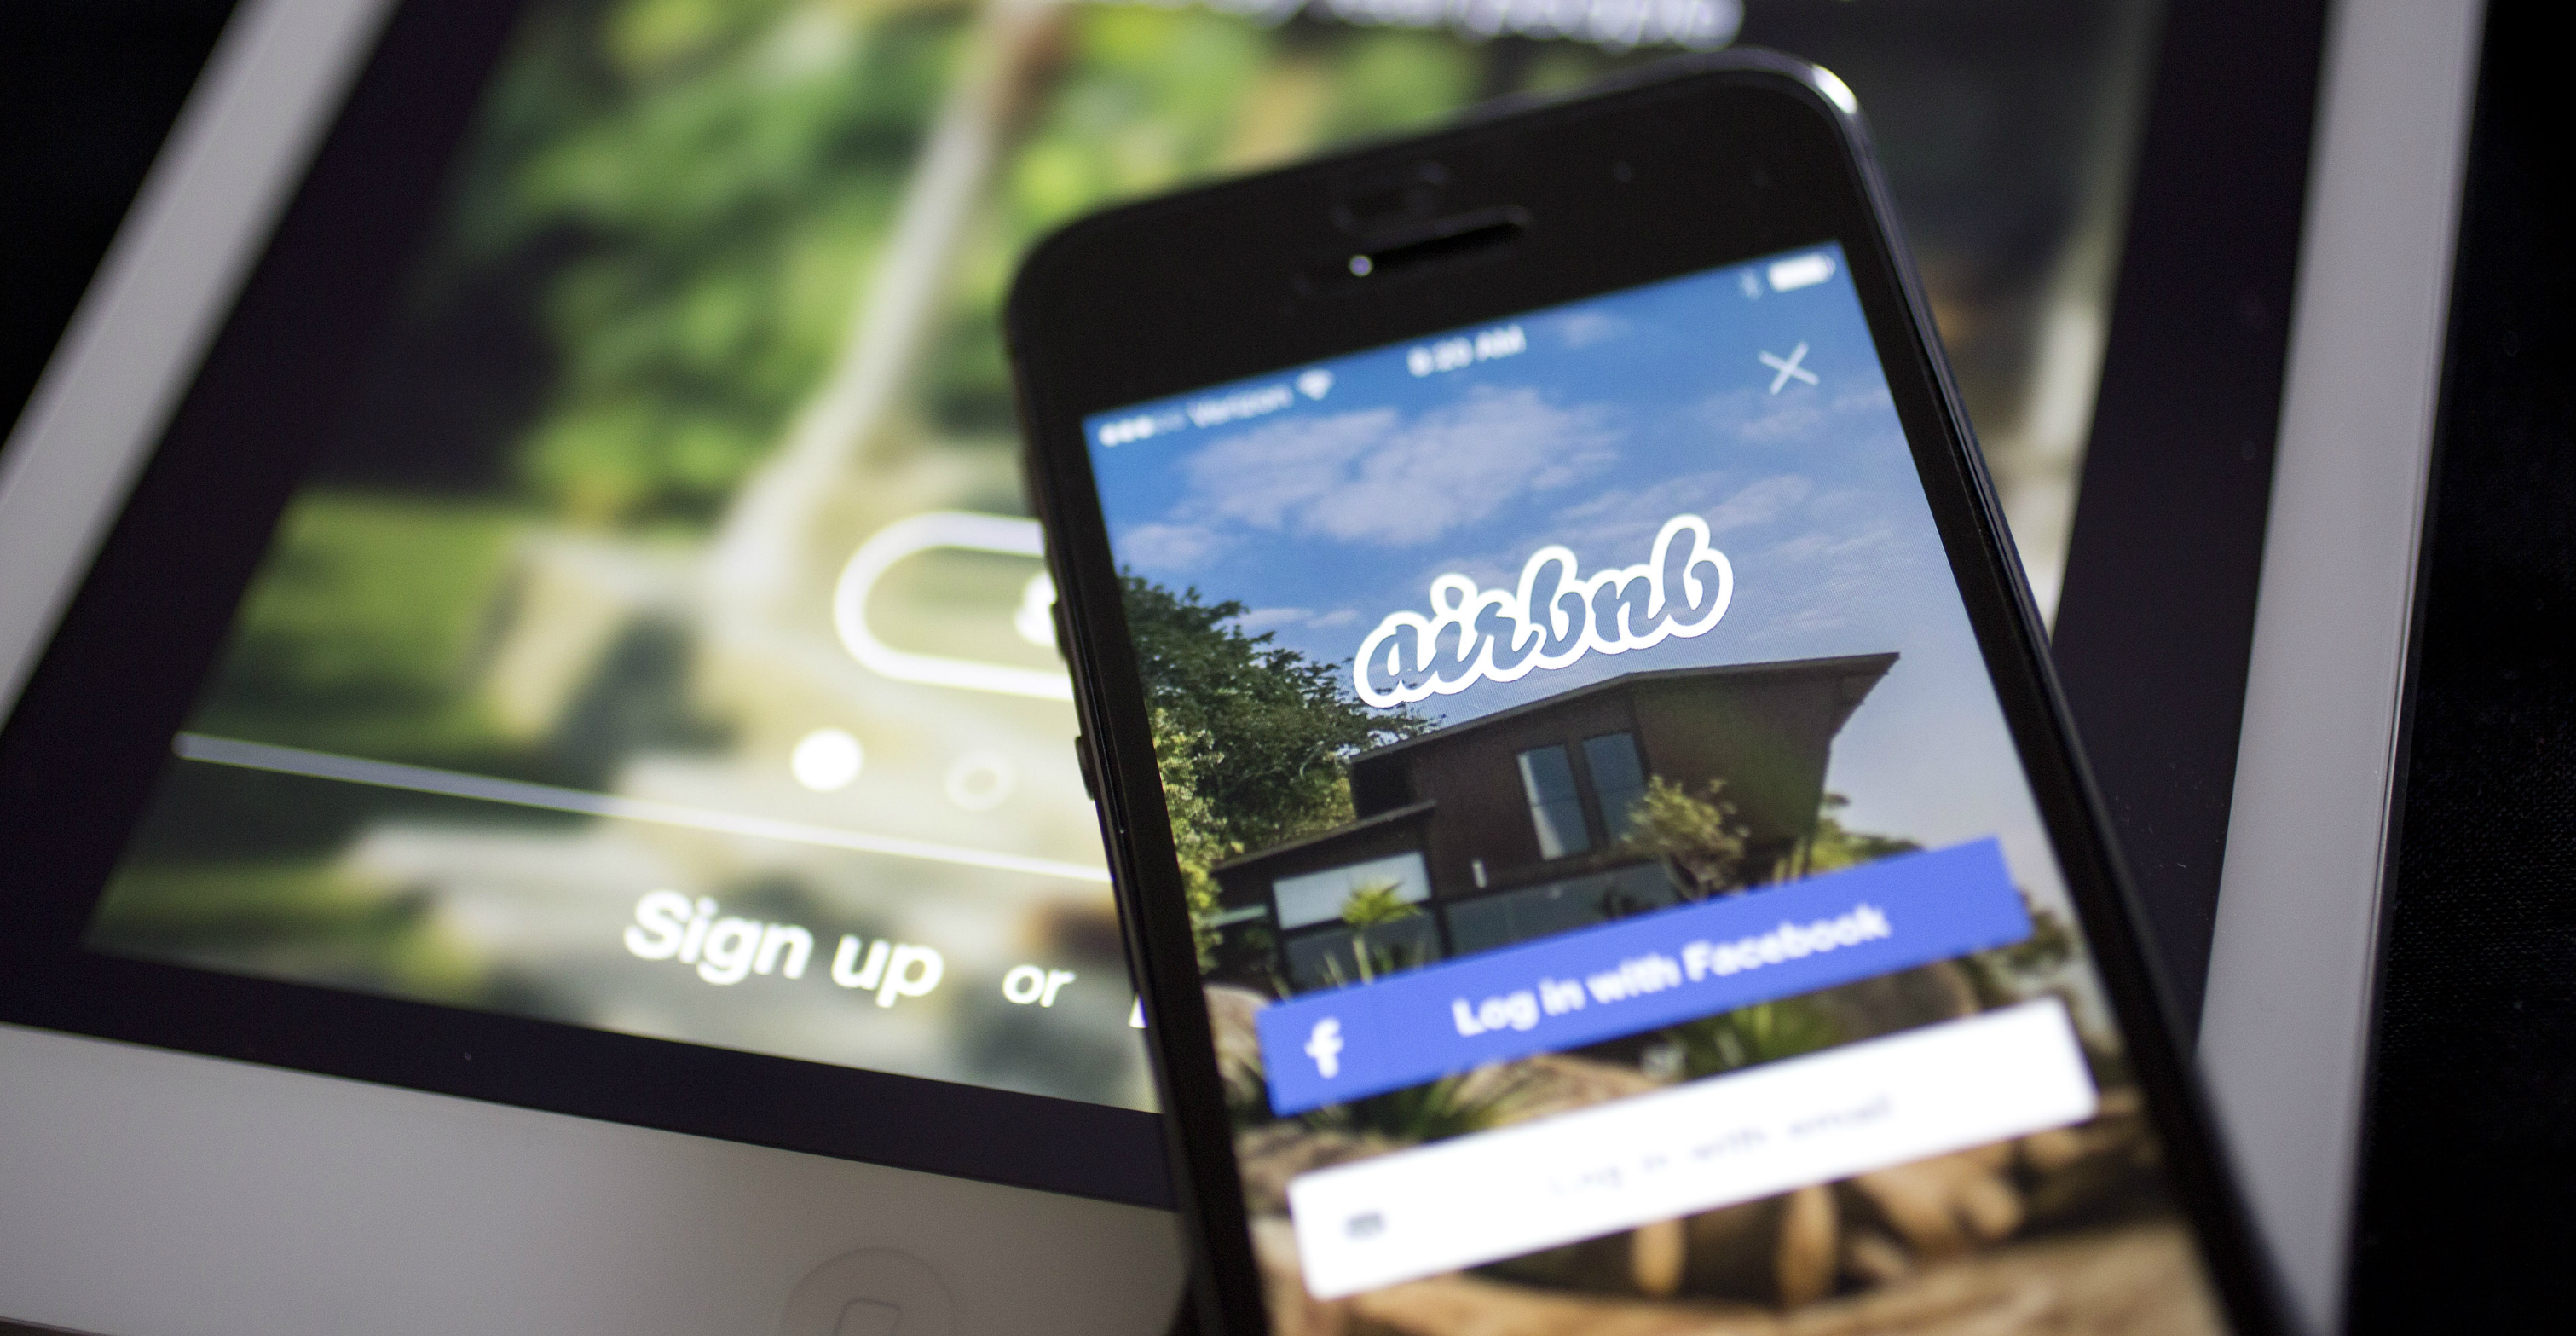 The acquisition is part of Airbnb's strategy to win over travelers who have shied away from the risks and quirks of renting a stranger's home. Photo: Bloomberg